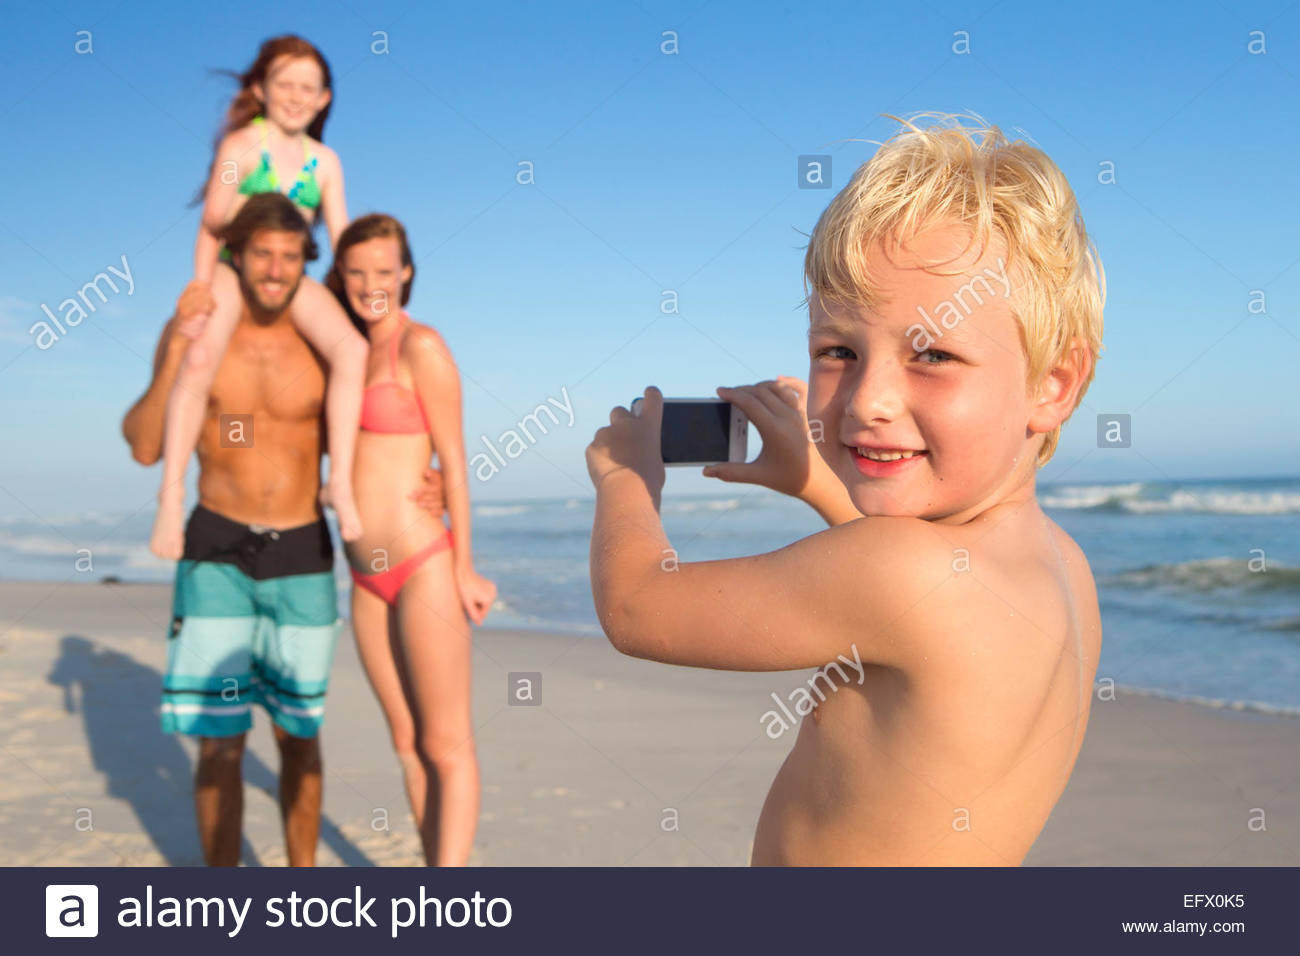 Boy, smiling at camera, taking photo of family on sunny beach - Stock Image